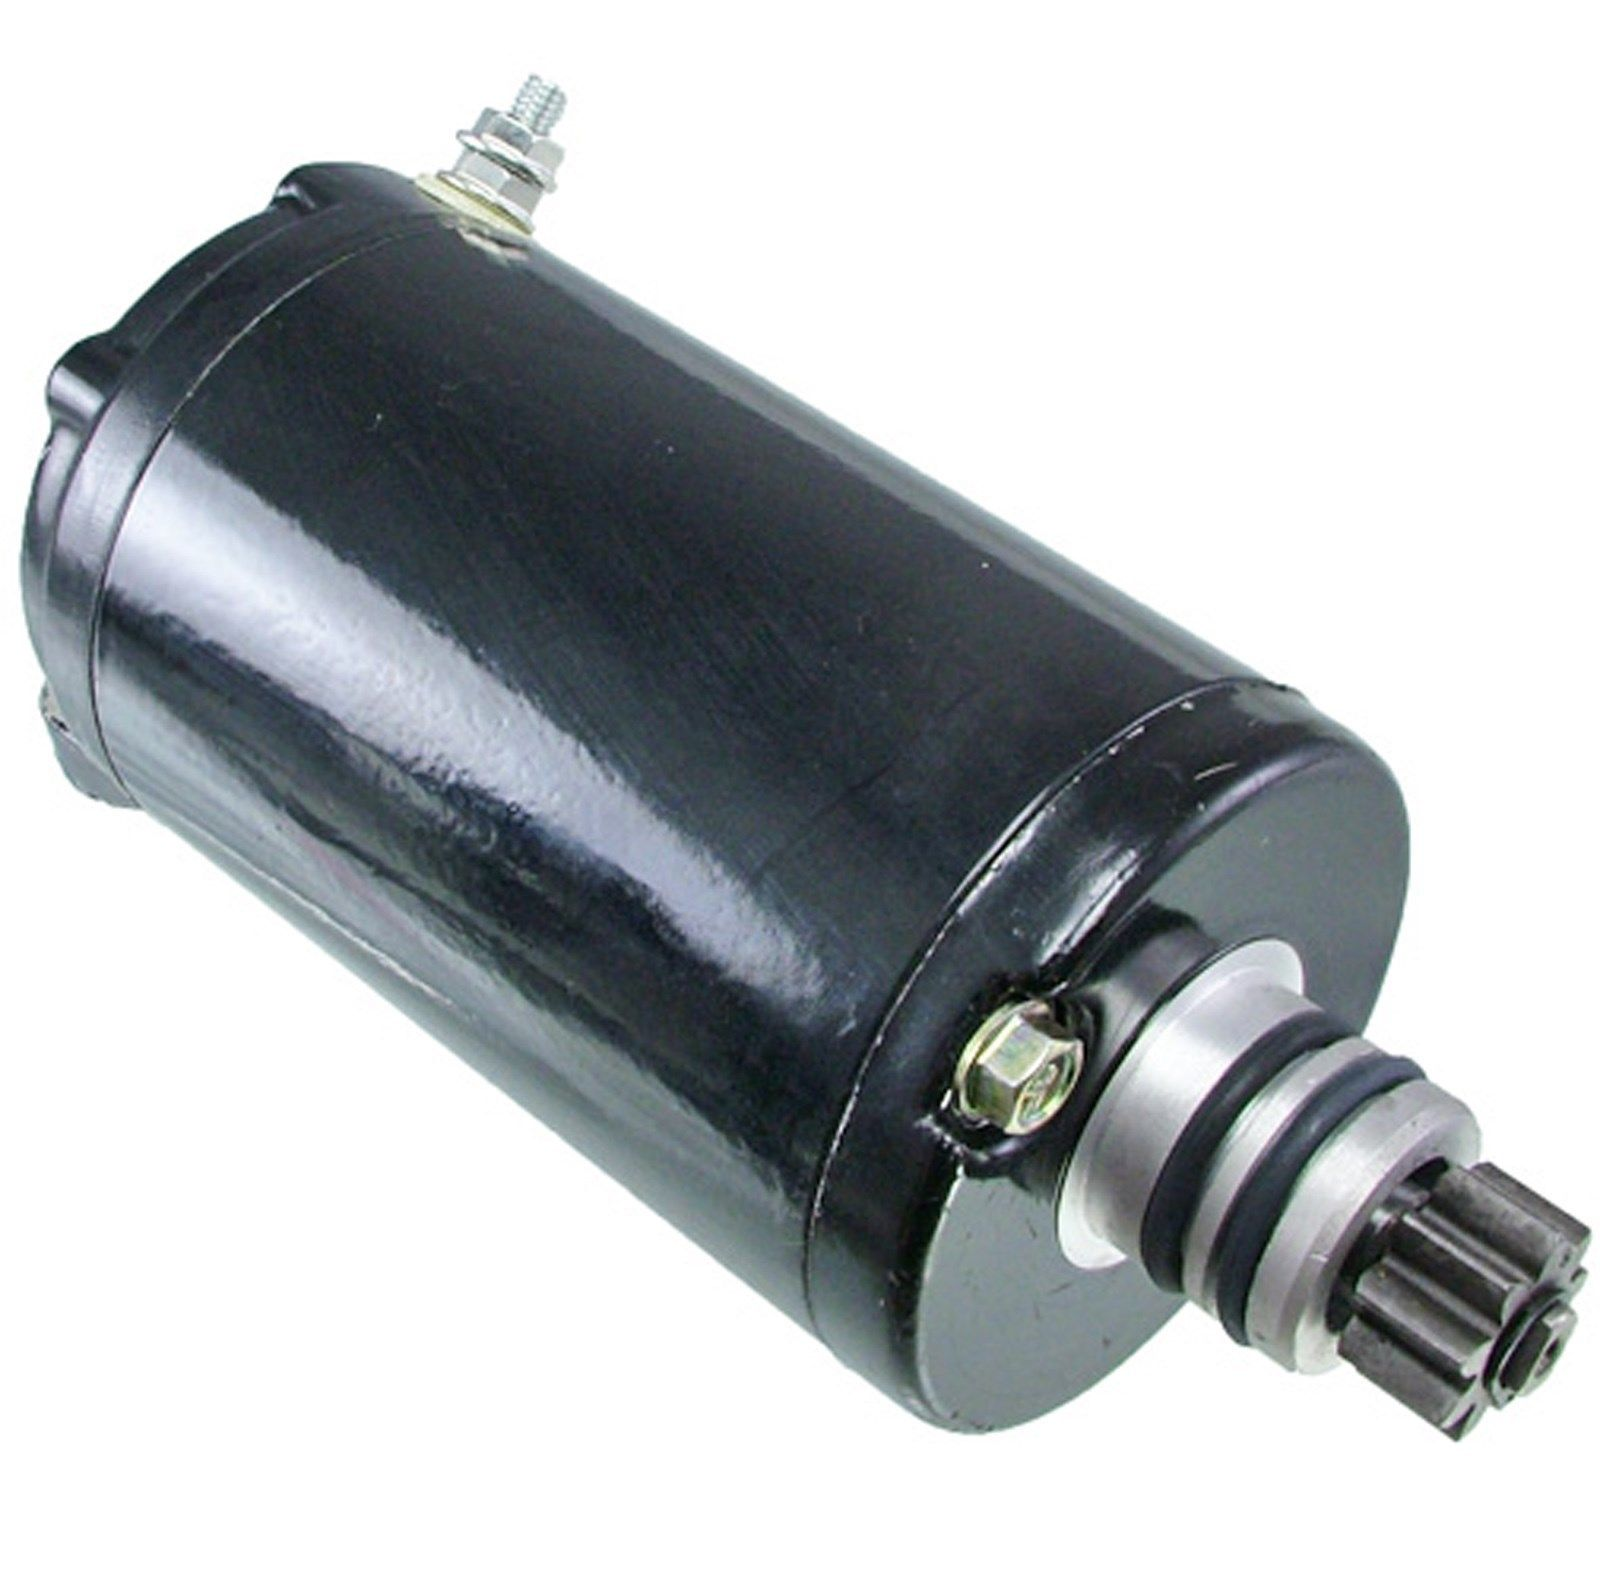 BOMBARDIER CAN-AM QUEST 650 XT MAX STARTER MOTOR 02-04